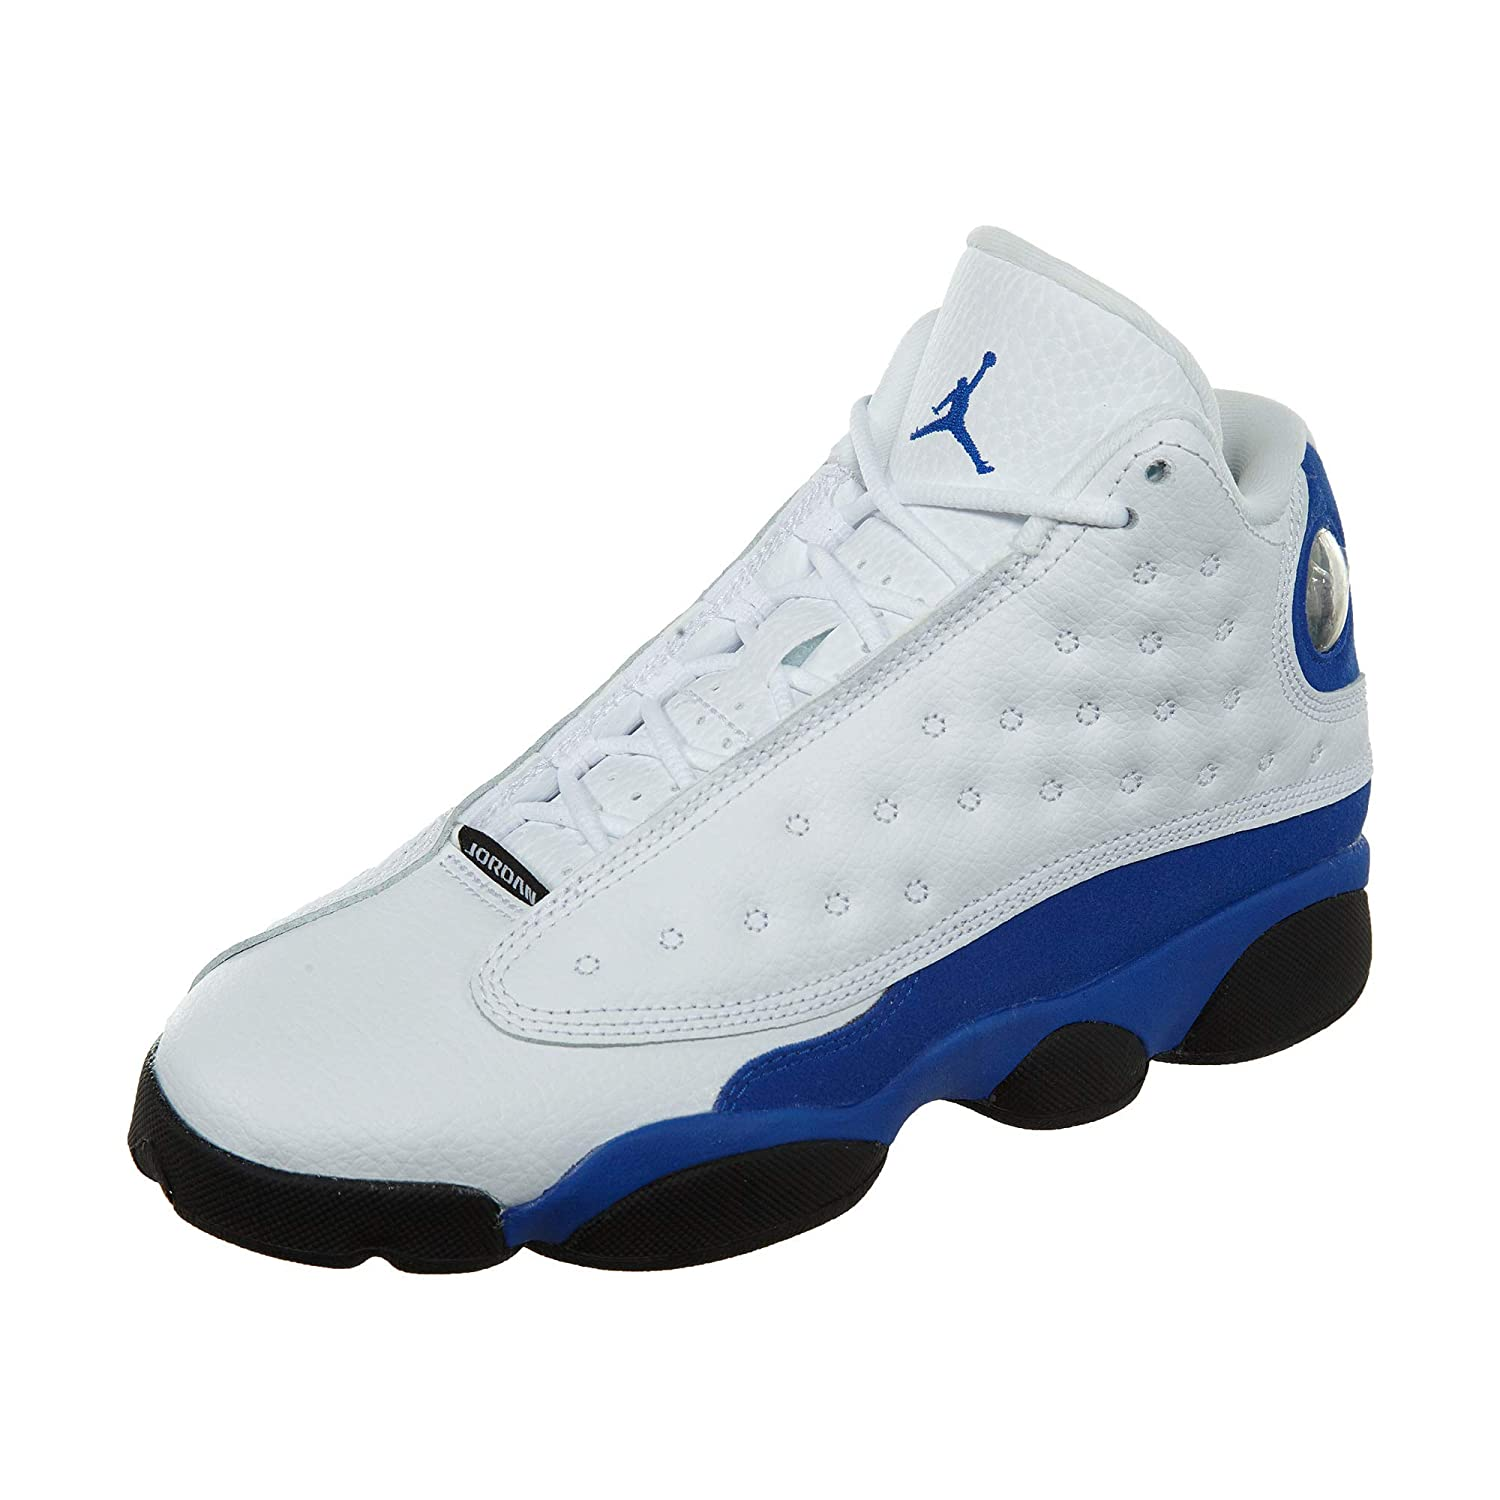 AIR JORDAN 13 RETRO BG 'HYPER ROYAL' - 884129-117 - SIZE 7Y